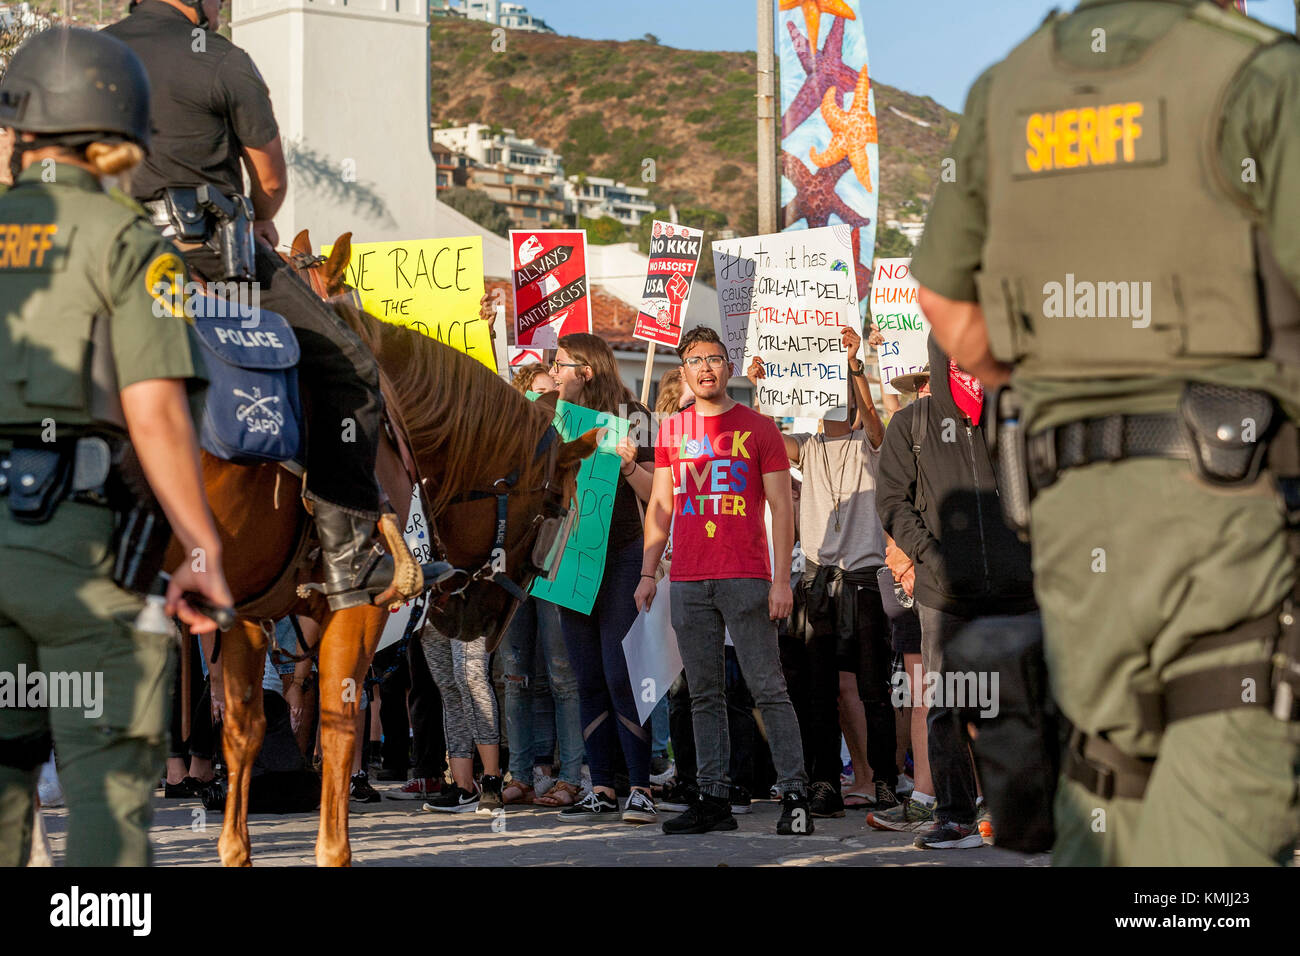 Multiracial counter demonstrators display their signs in Laguna Beach, CA, in opposition to an adjacent anti-immigrant - Stock Image